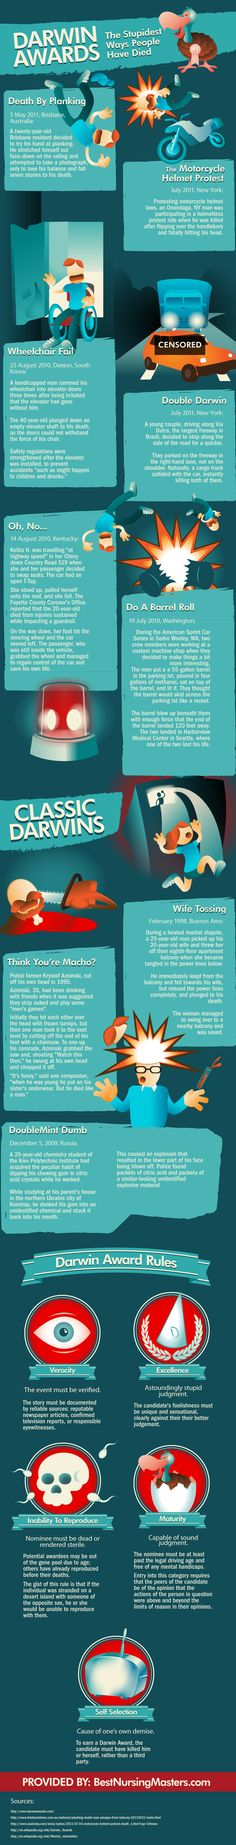 Darwin Awards: The Stupidest Ways People Have Died - Infographic